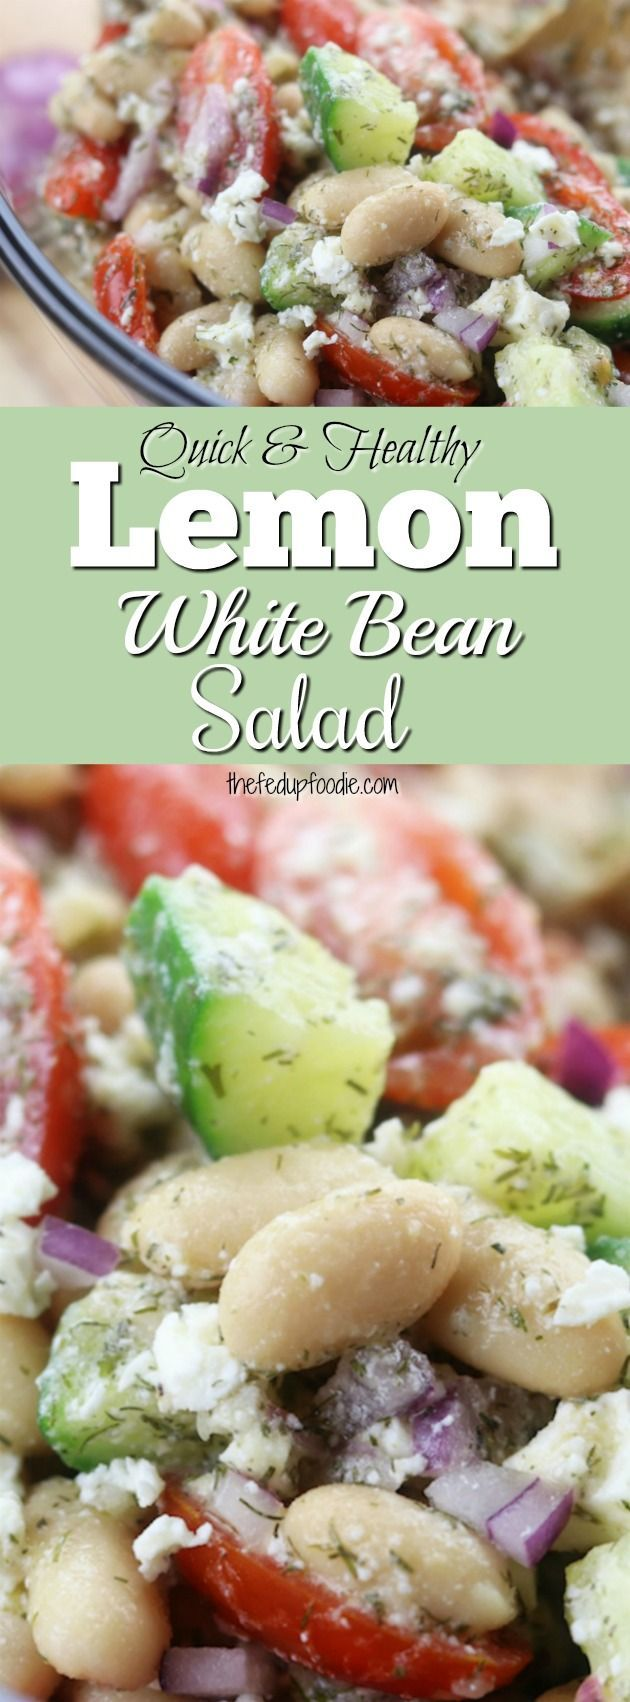 Quick and healthy, Lemon White Bean Salad is perfect as a refreshing lunch, side dish or party salad. Takes just minutes to assemble making eating well on busy days so much easier. #salad #lunch #beans #healthyrecipe  https://www.thefedupfoodie.com